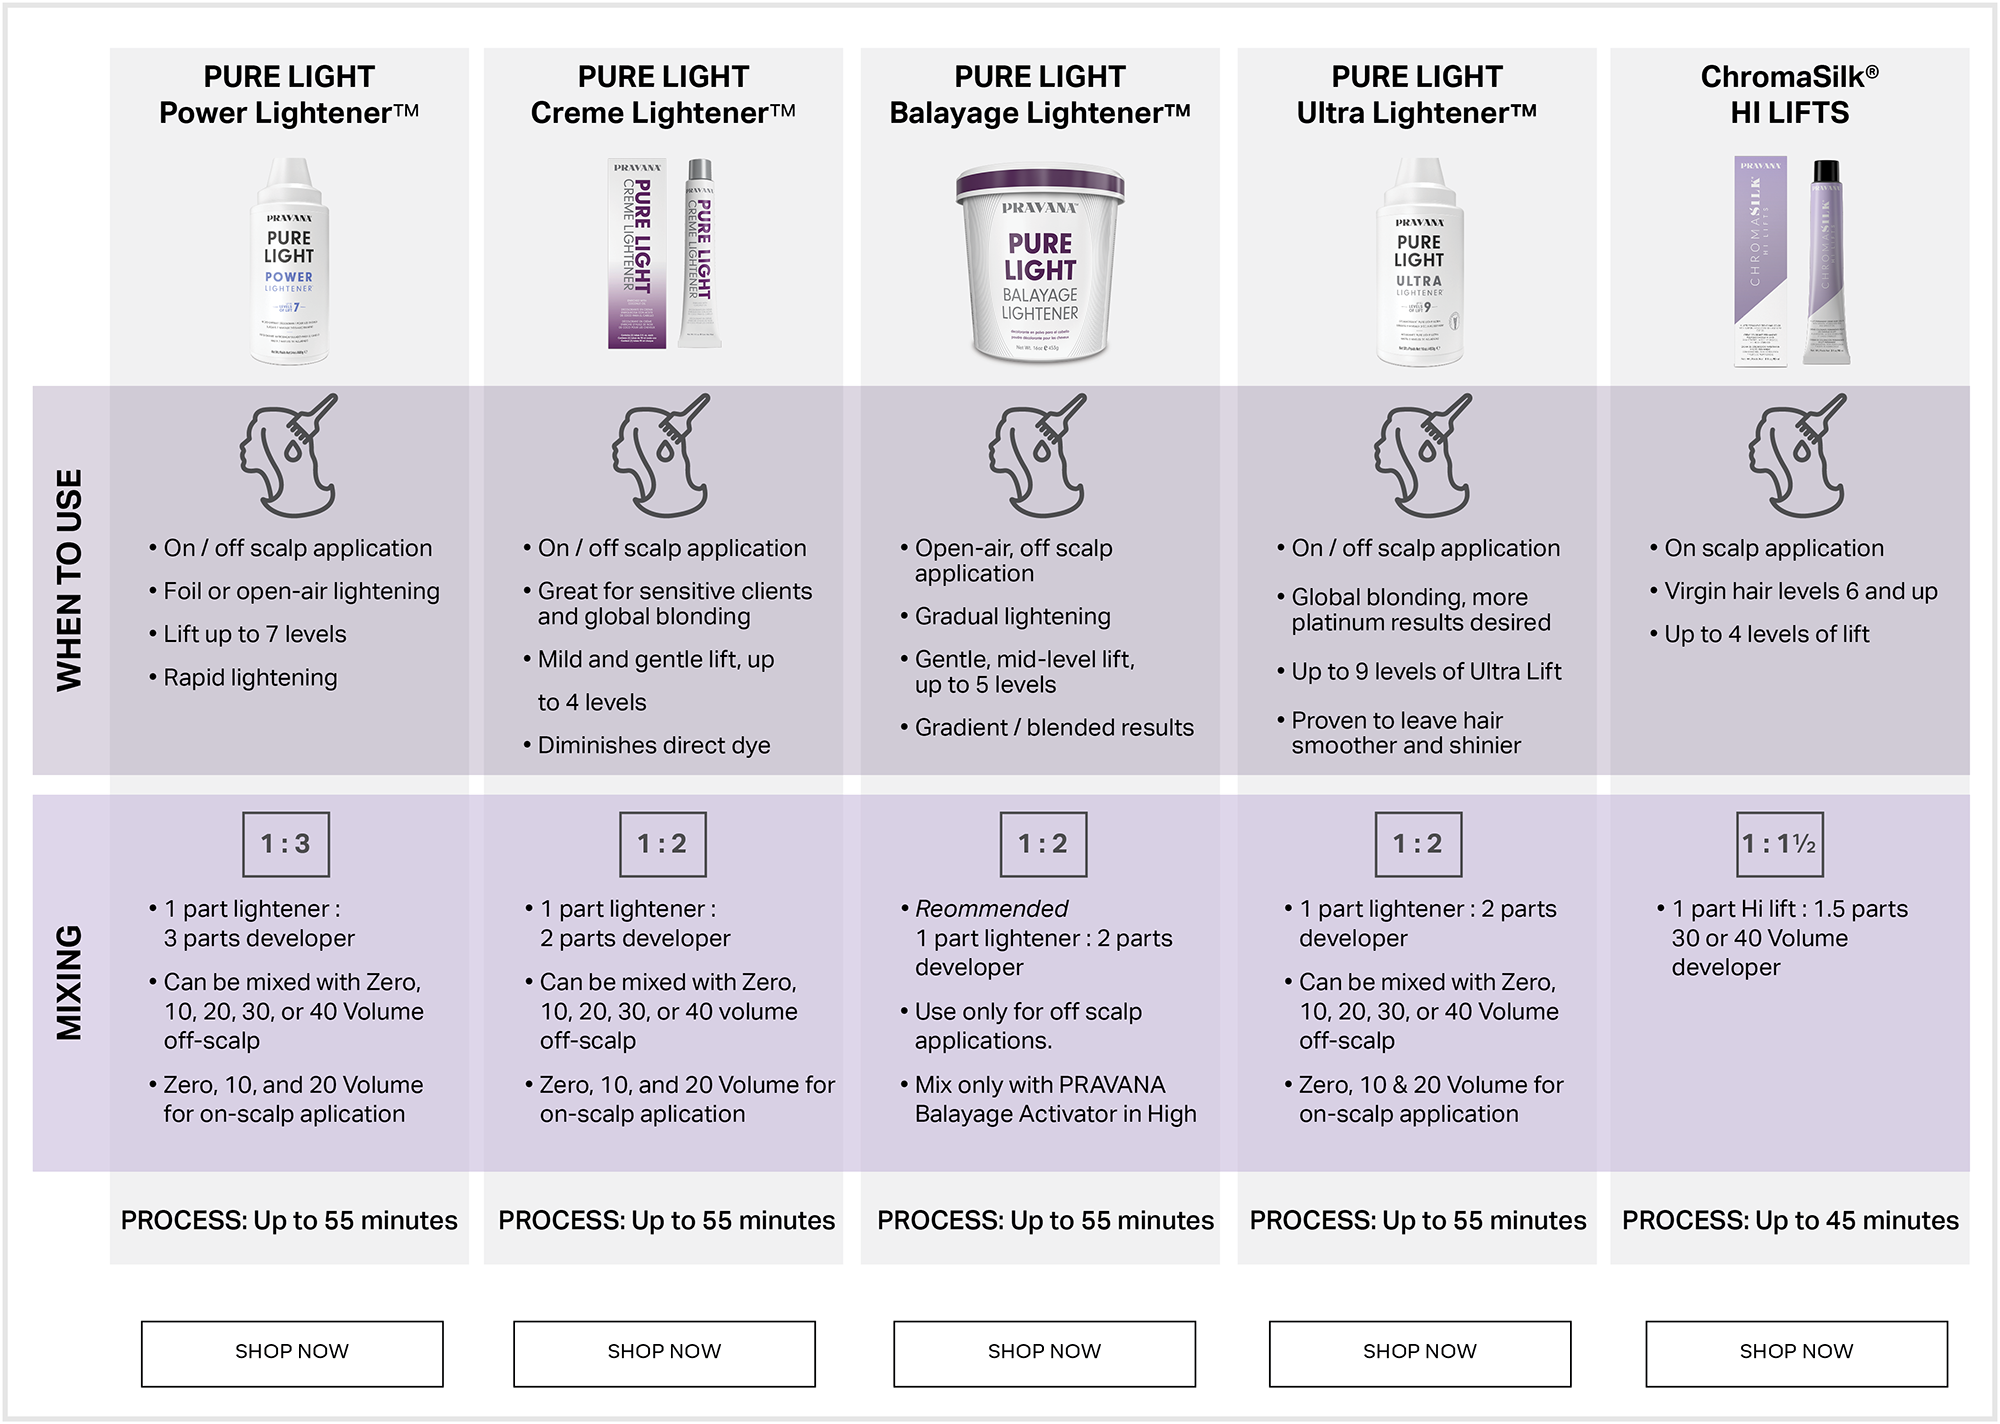 chart for five different pravana products and when to use them: pure light power lightener, creme lightener, balayage lightener, ultra lightener, and chromasilk hi lifts. They all take 55 minutes to process